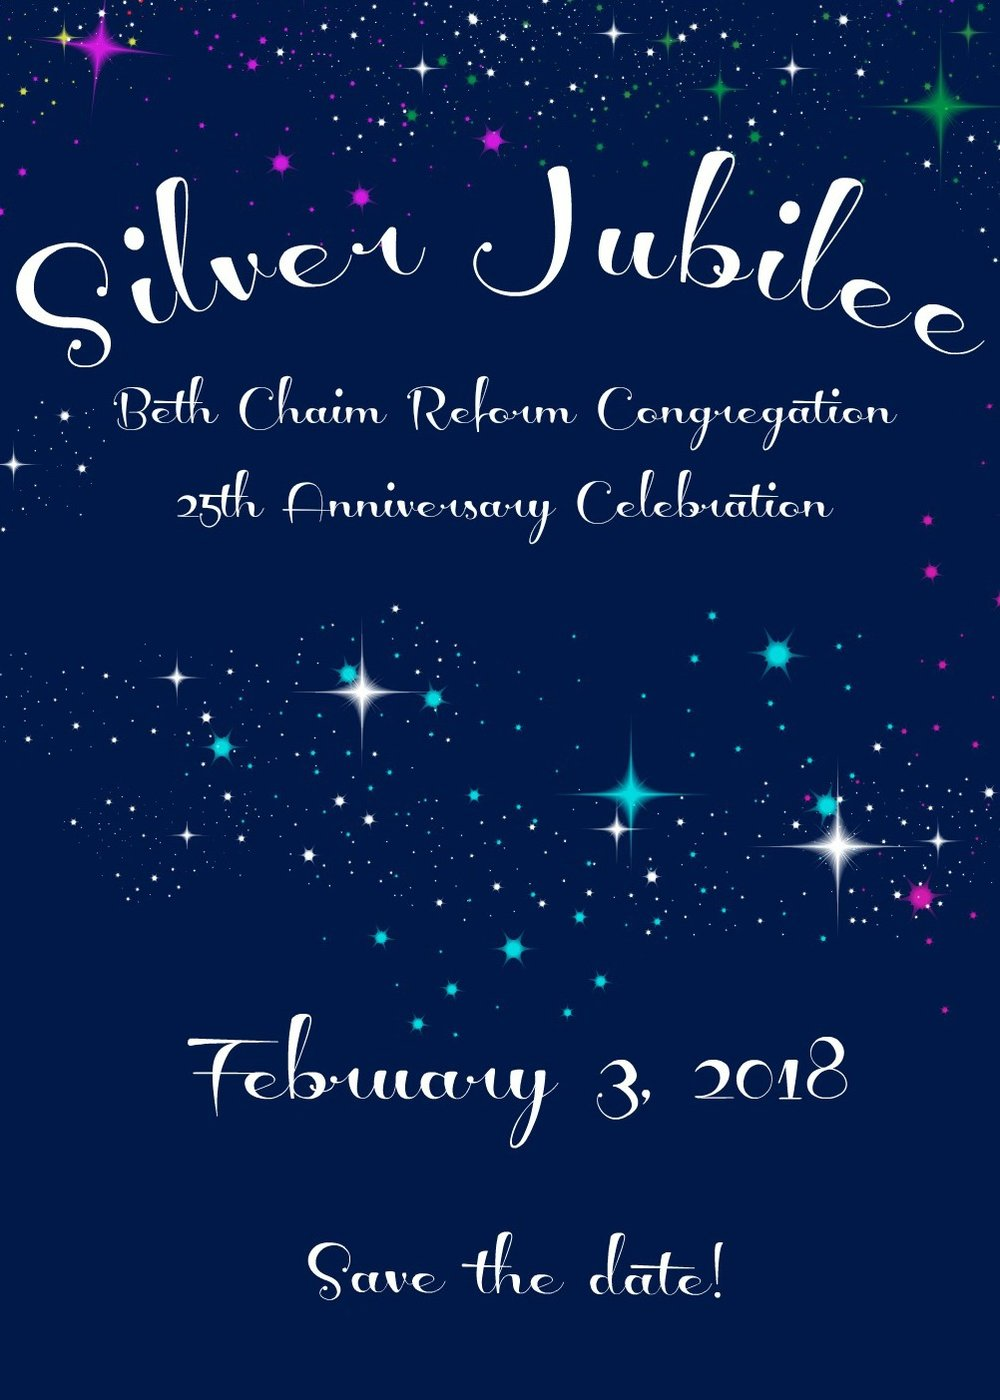 jubilee with colors save the date croped to 5x7.jpg